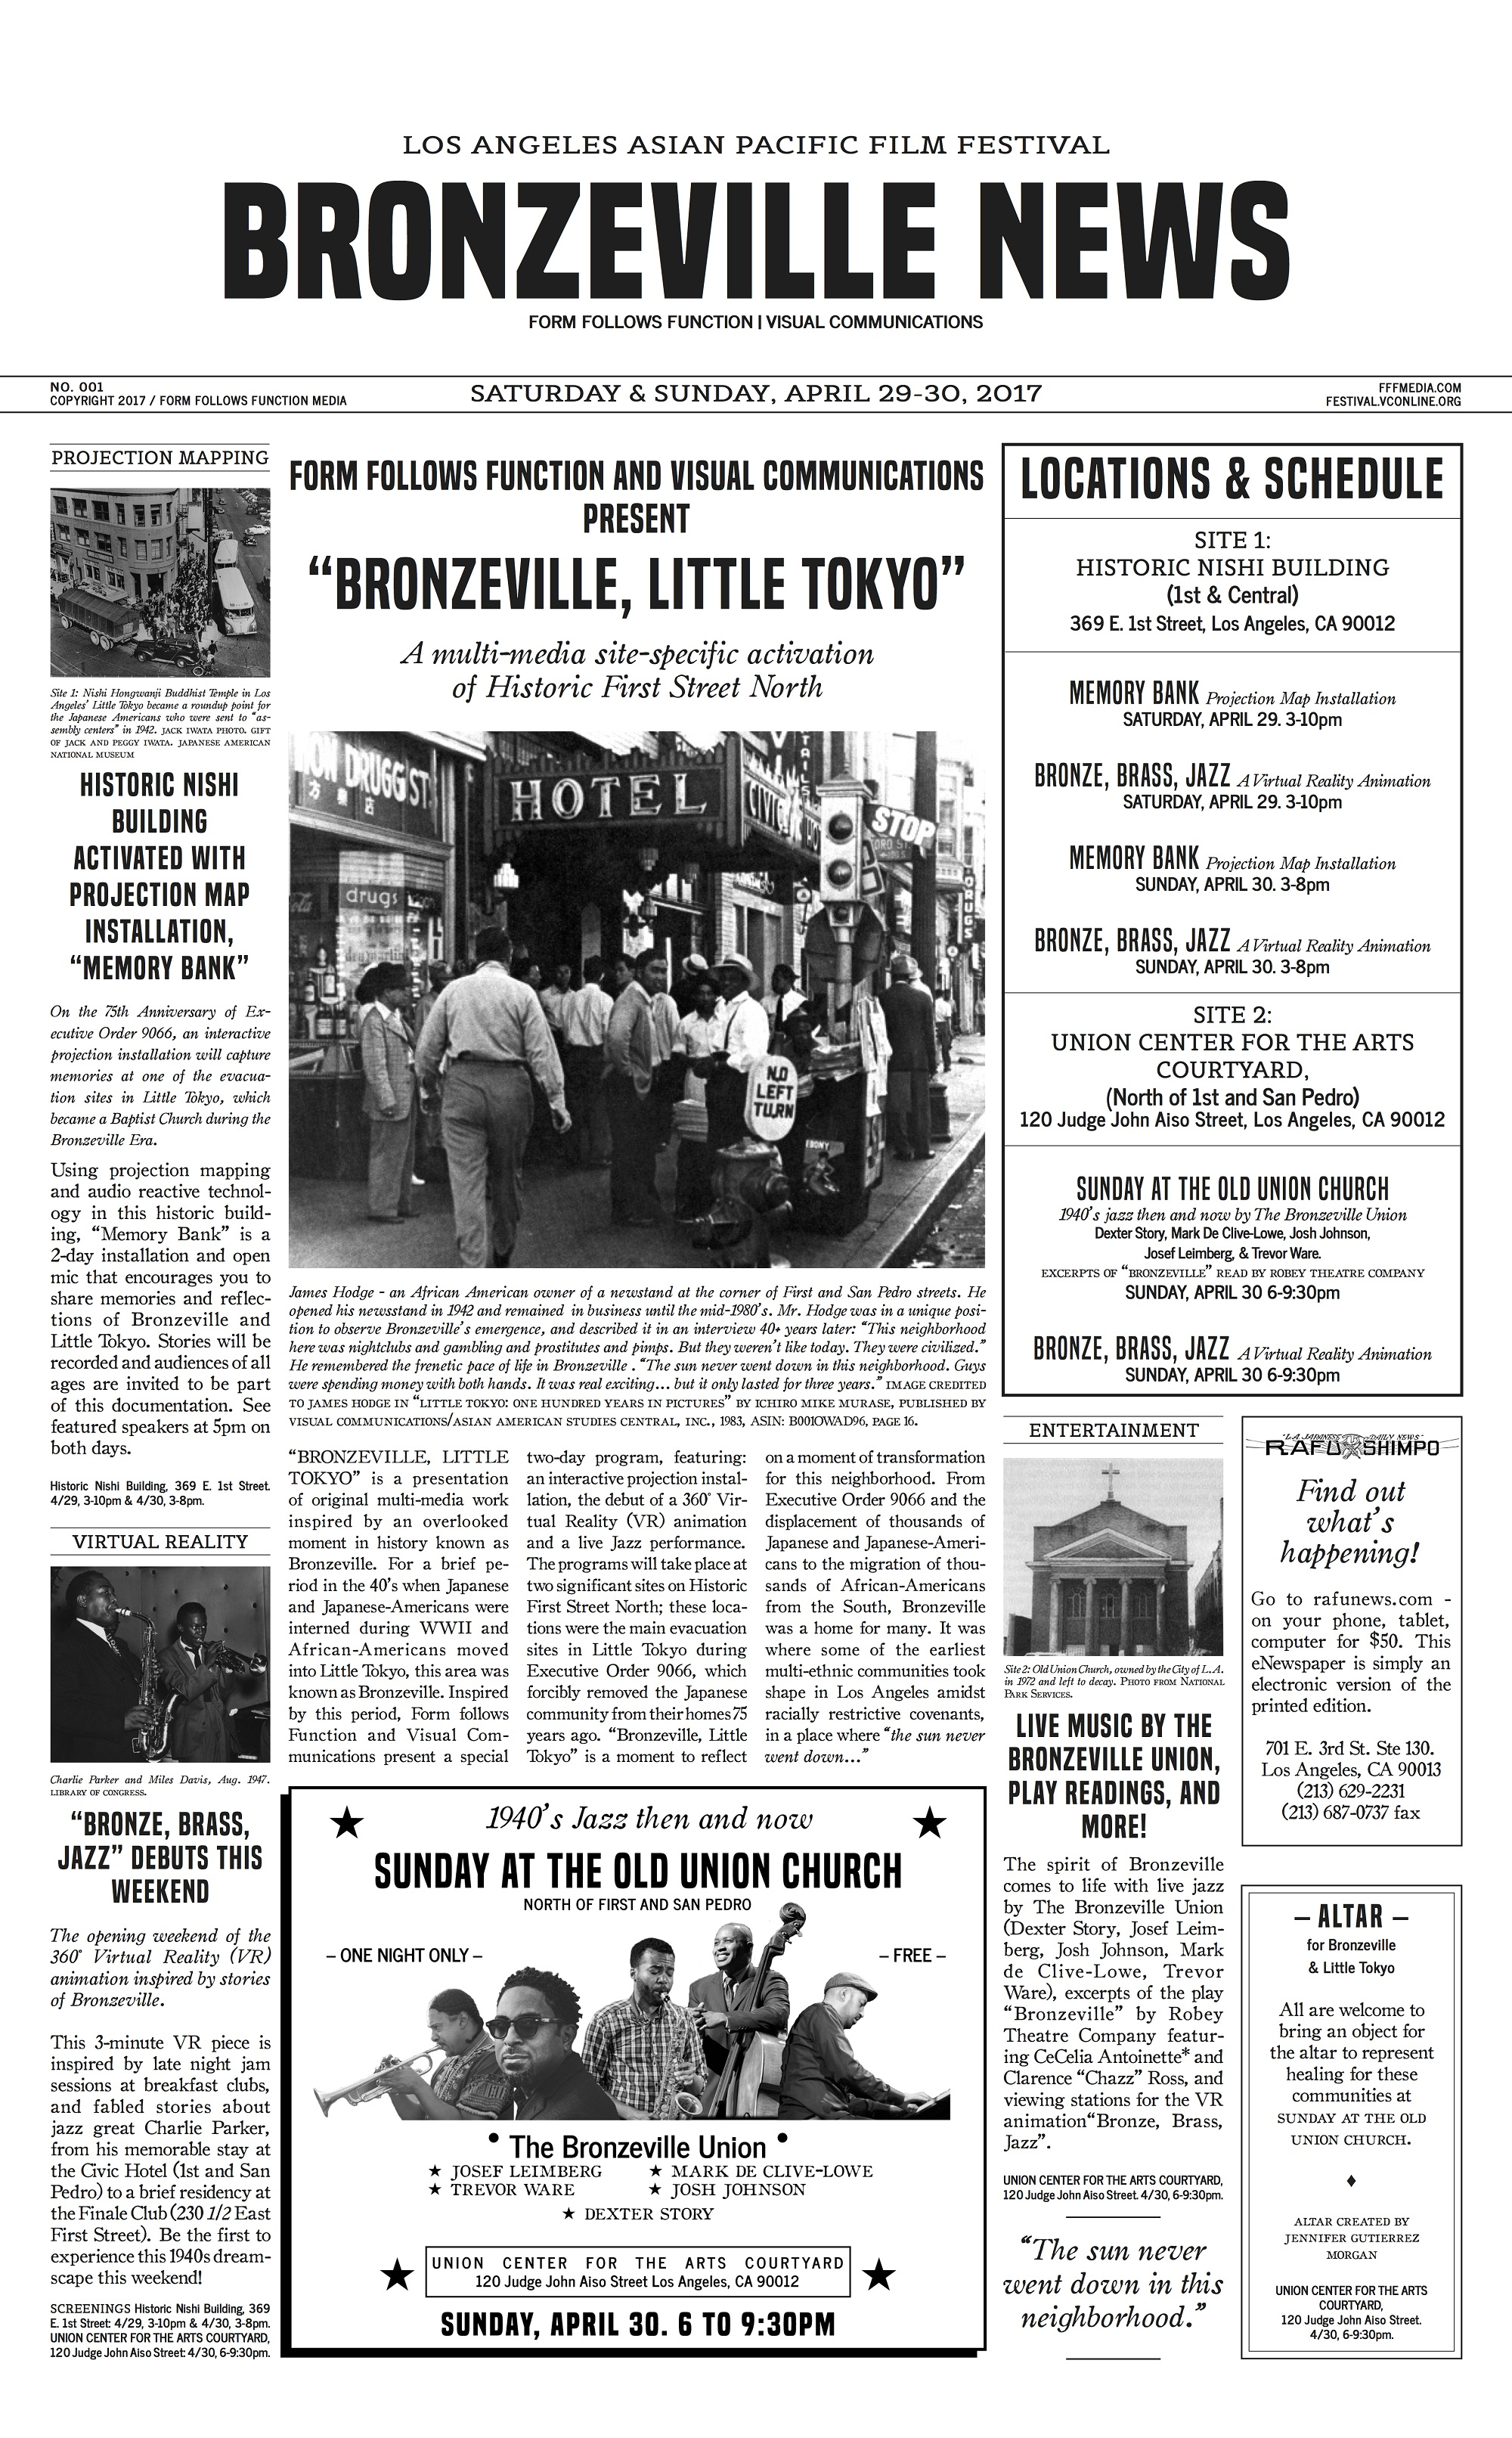 Front page of Bronzeville, Little Tokyo program art, a newspaper collaboration with Rafu Shimpo.